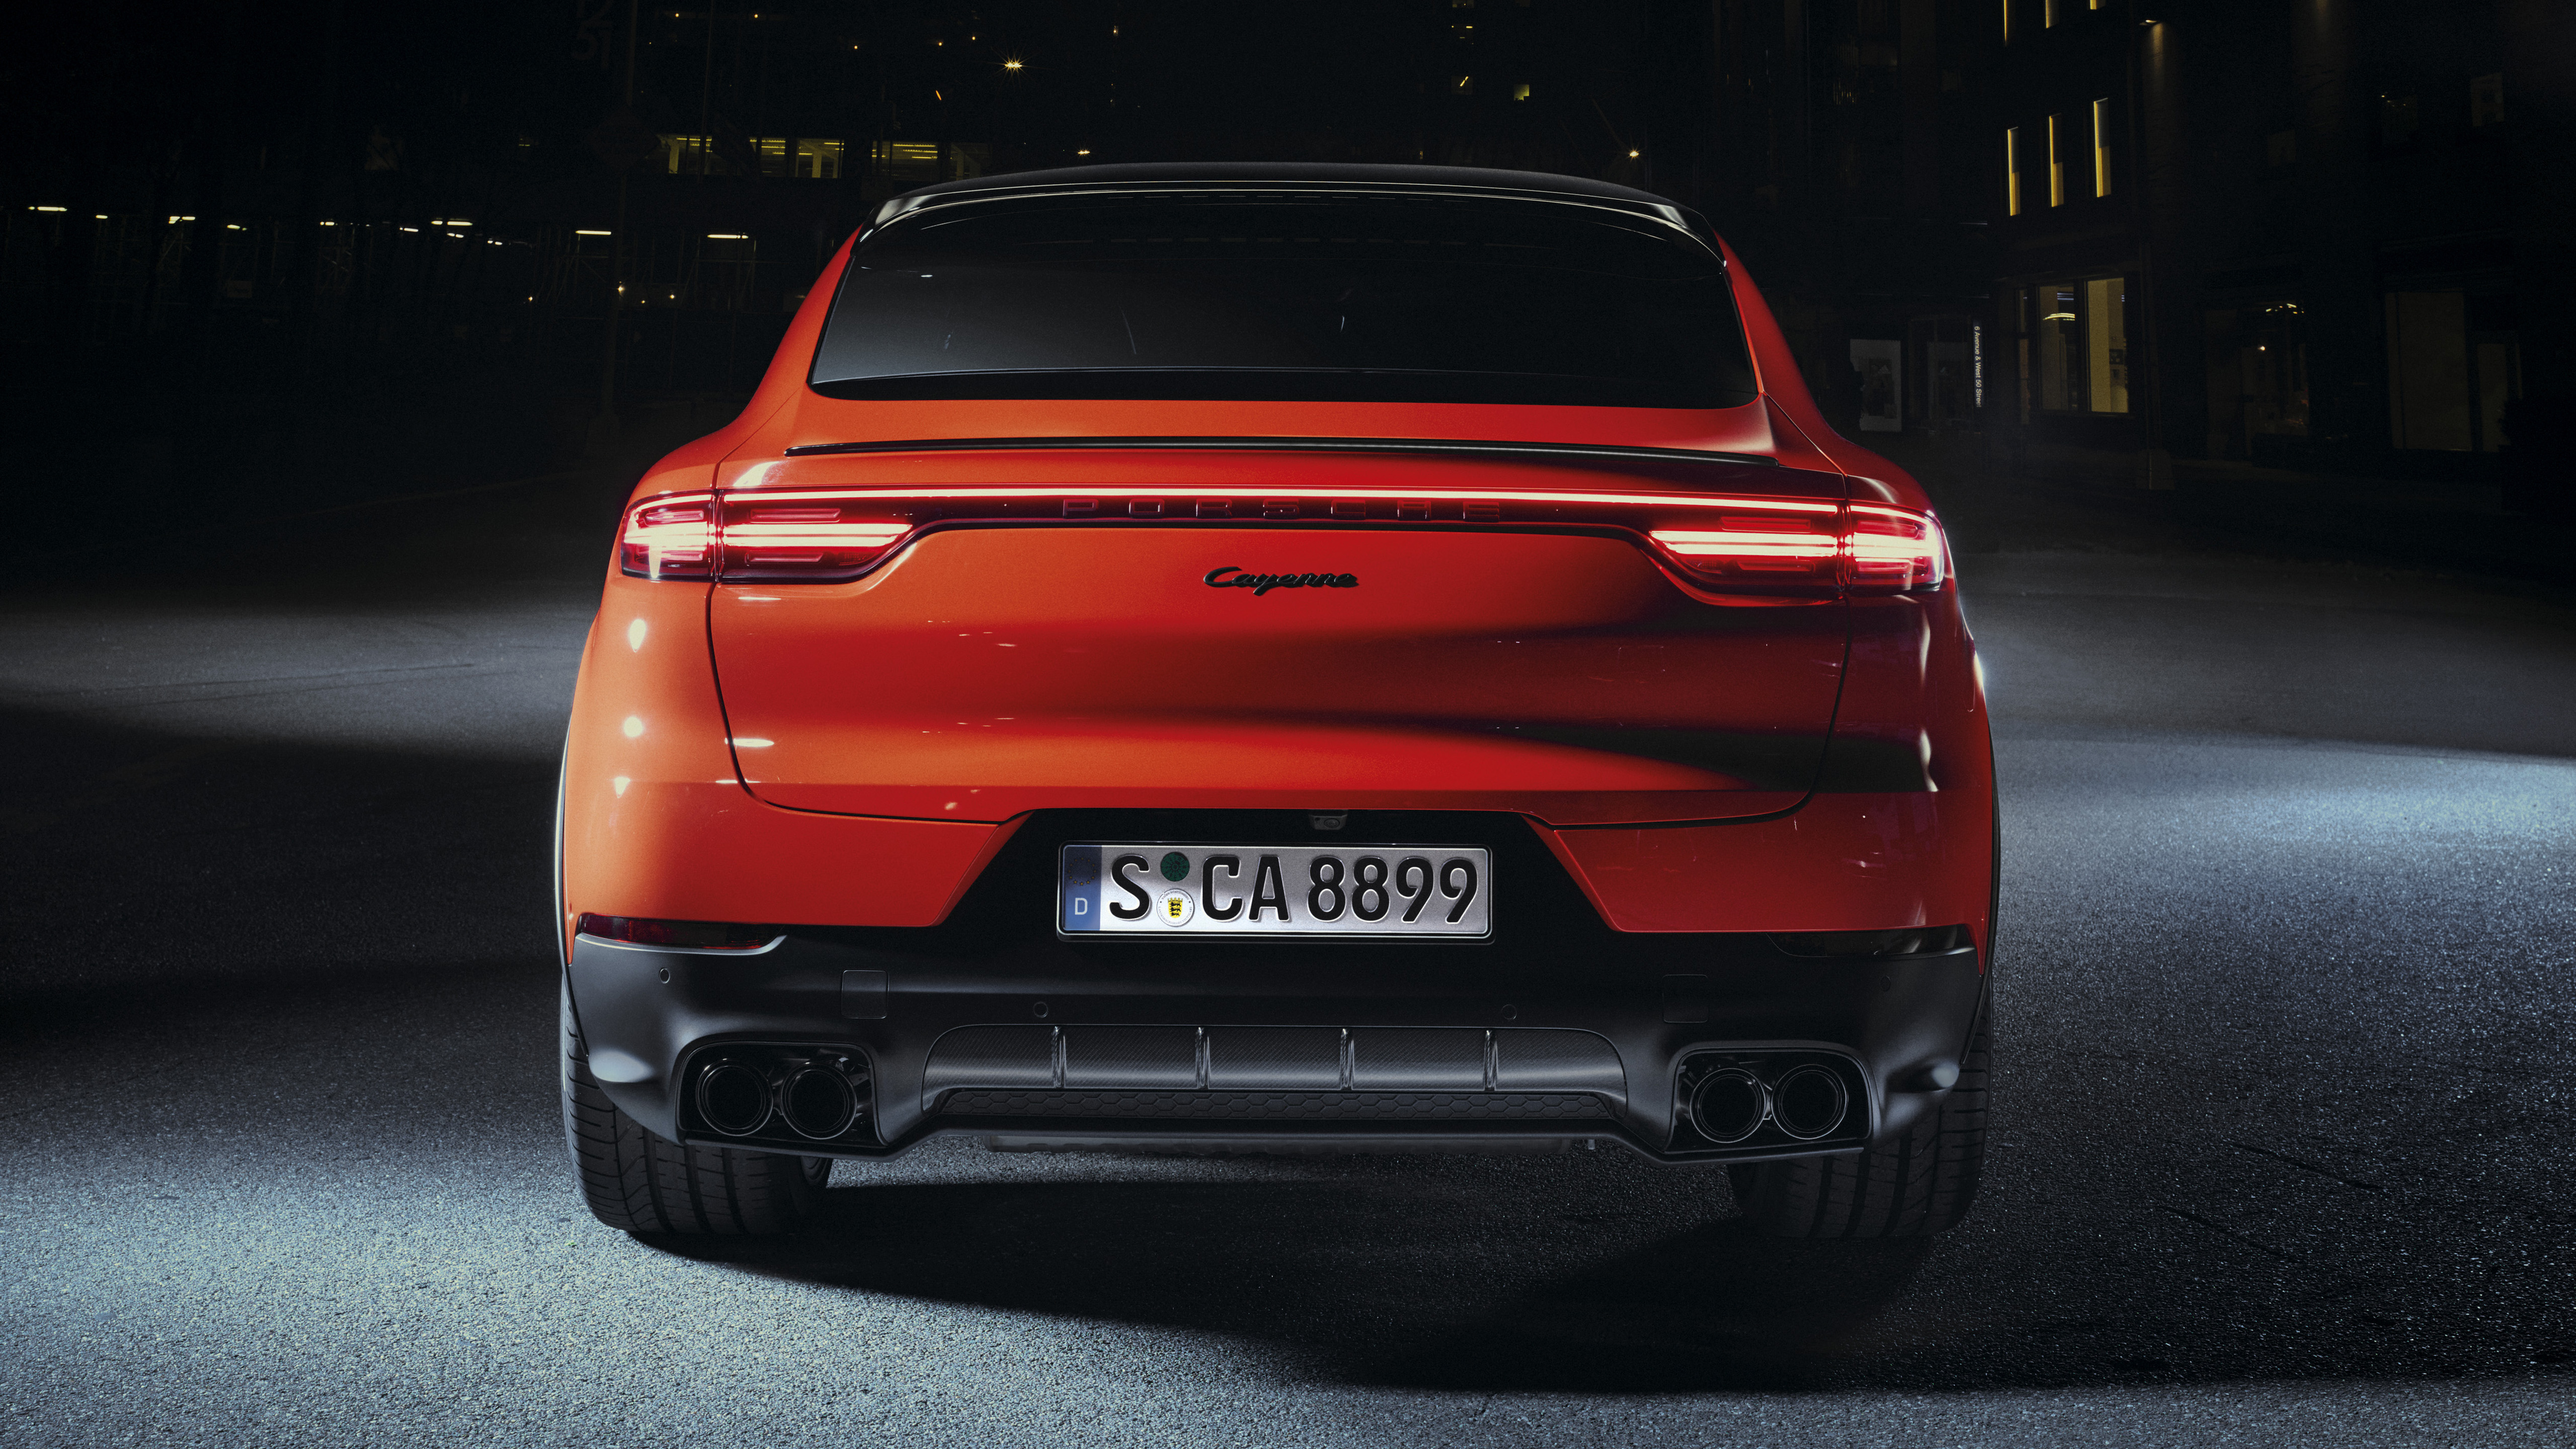 Porsche Cayenne Coupe 2019 4K 6 Wallpaper HD Car Wallpapers ID 5120x2880